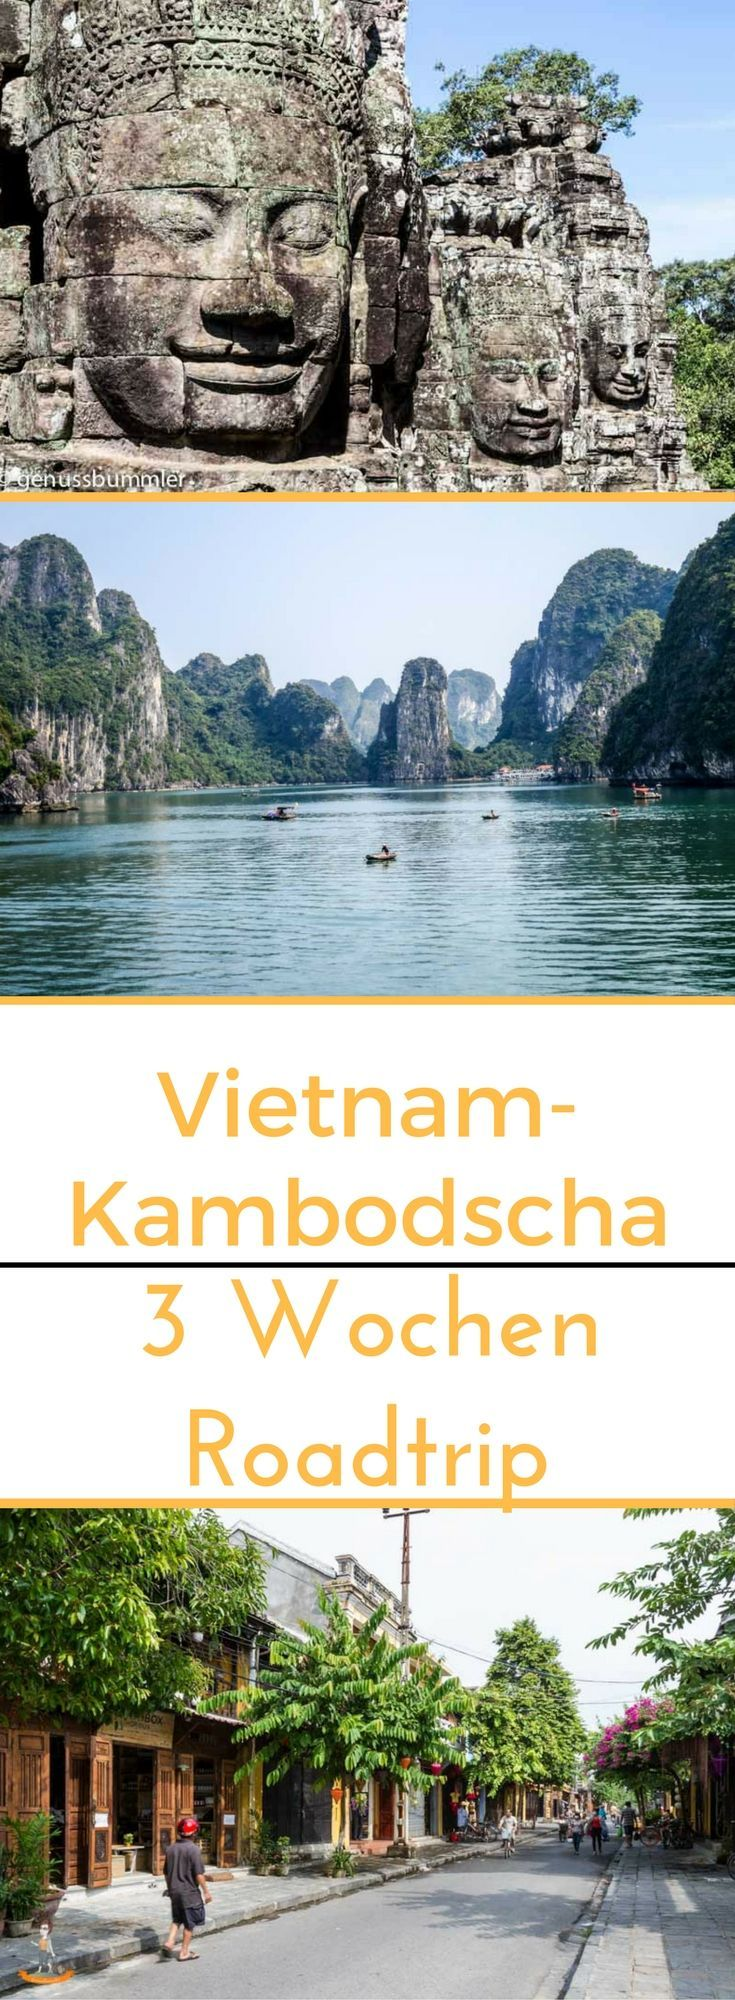 dream home #home Roadtrip 6: Vietnam-Kambodscha